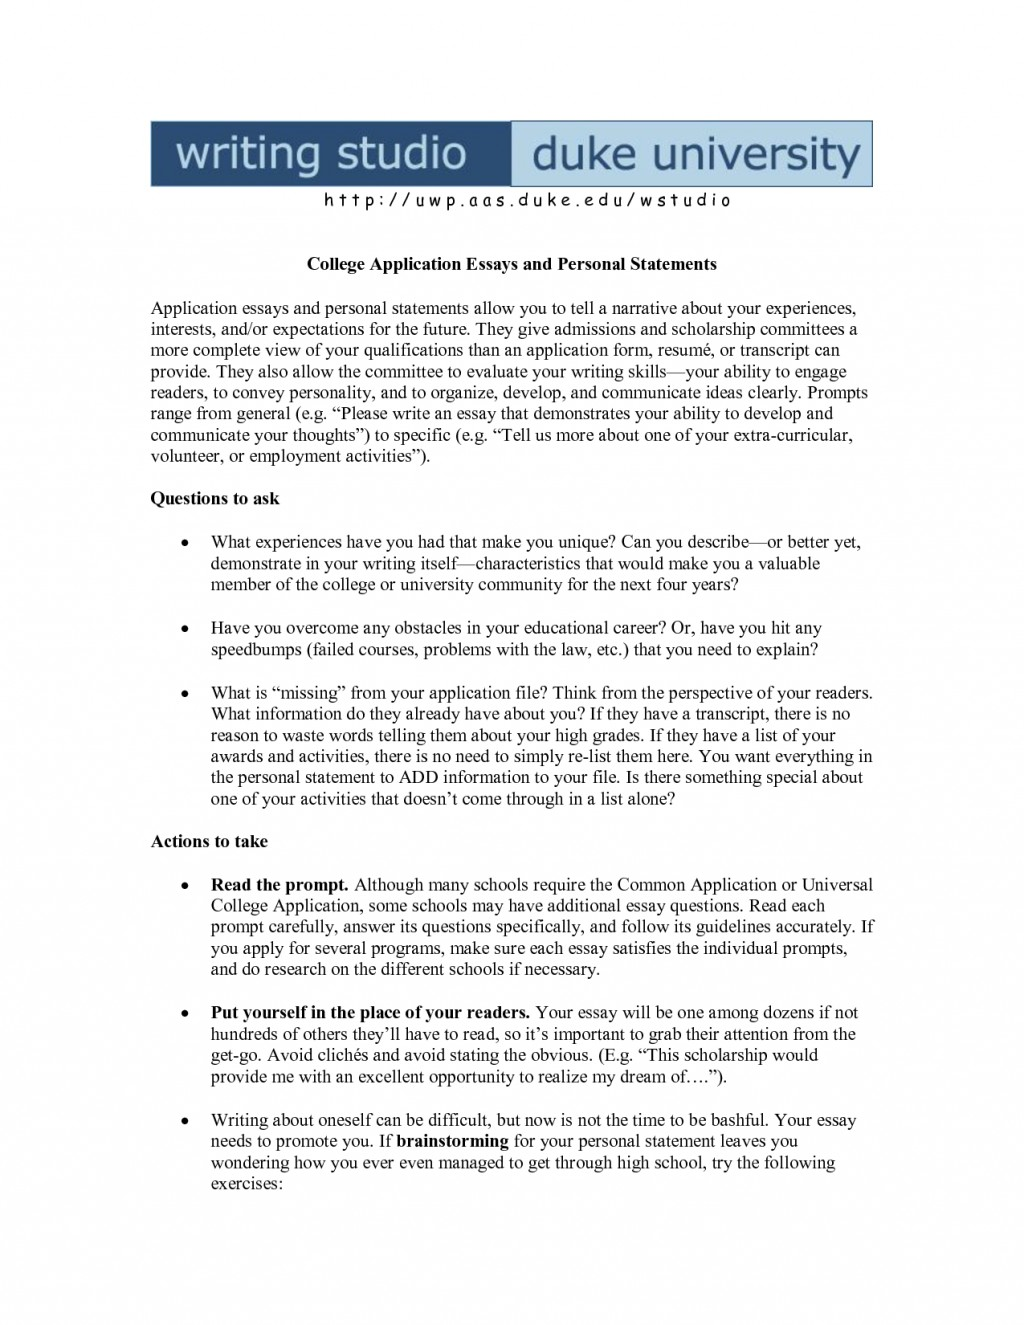 003 Essay Example Uclication Fuvq4 College Questions Common Dreaded App 2017 2017-18 Large